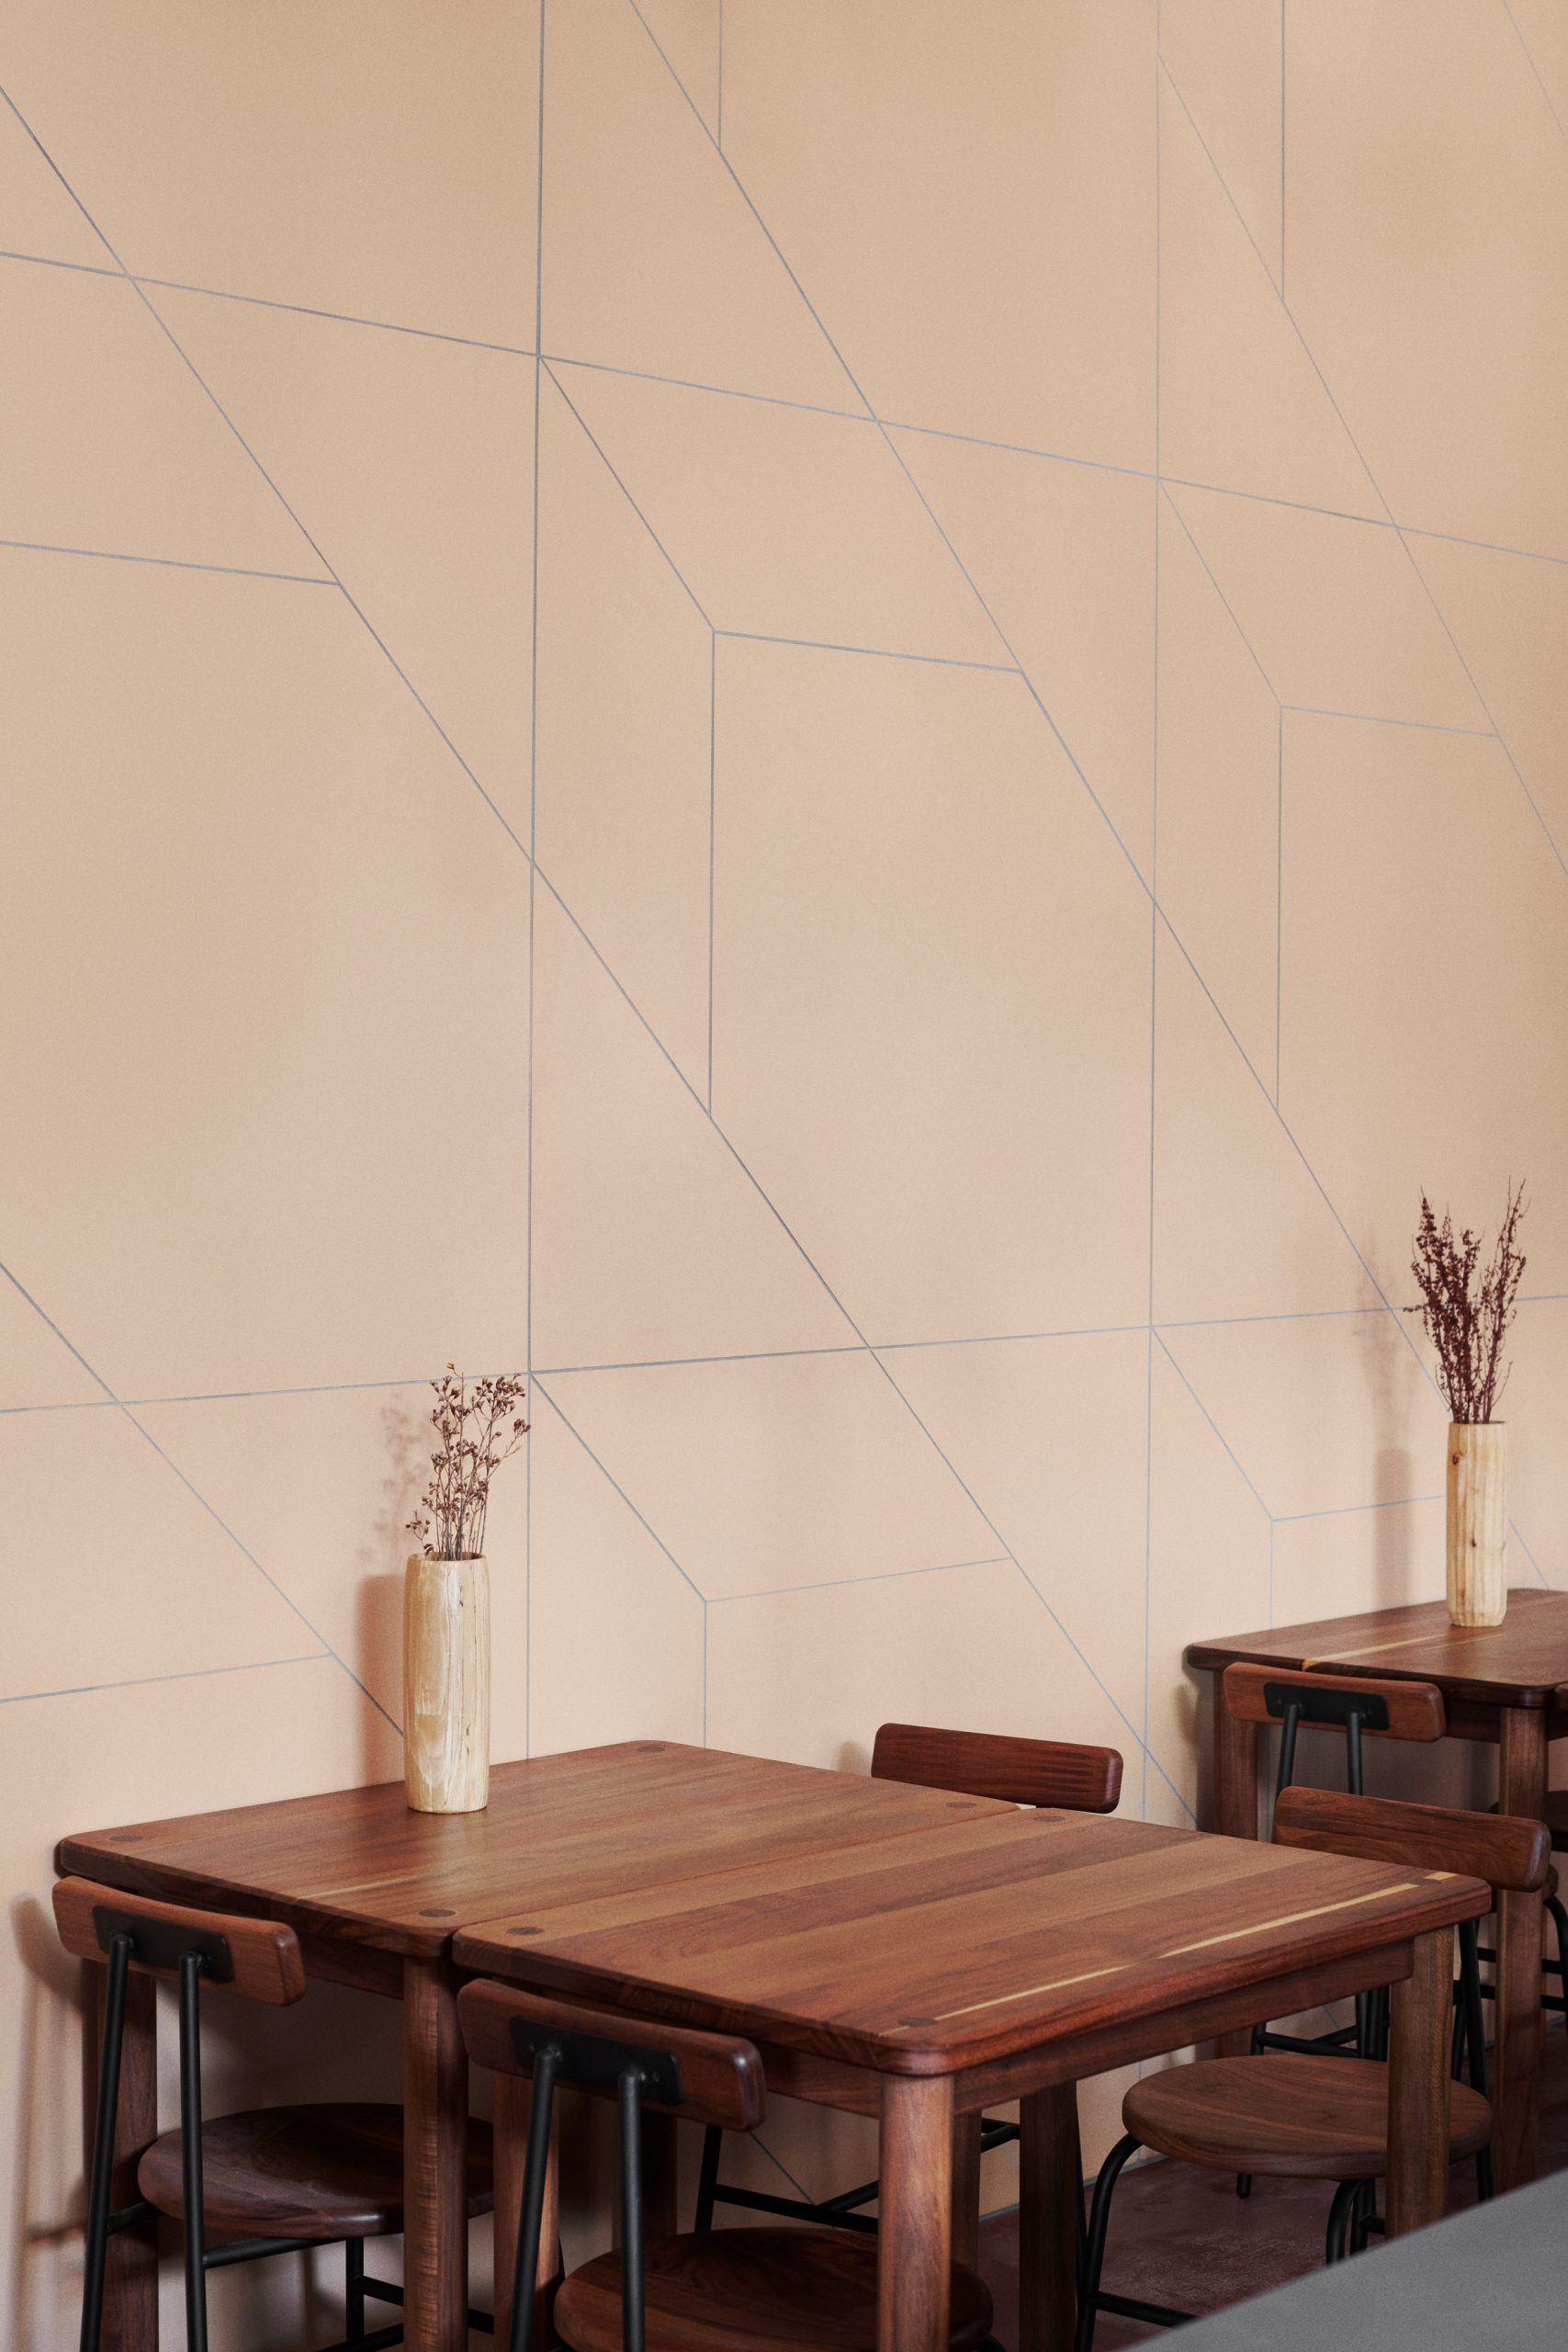 Mutina wall tiles at Hija de Sanchez Cantina by OEO Studio